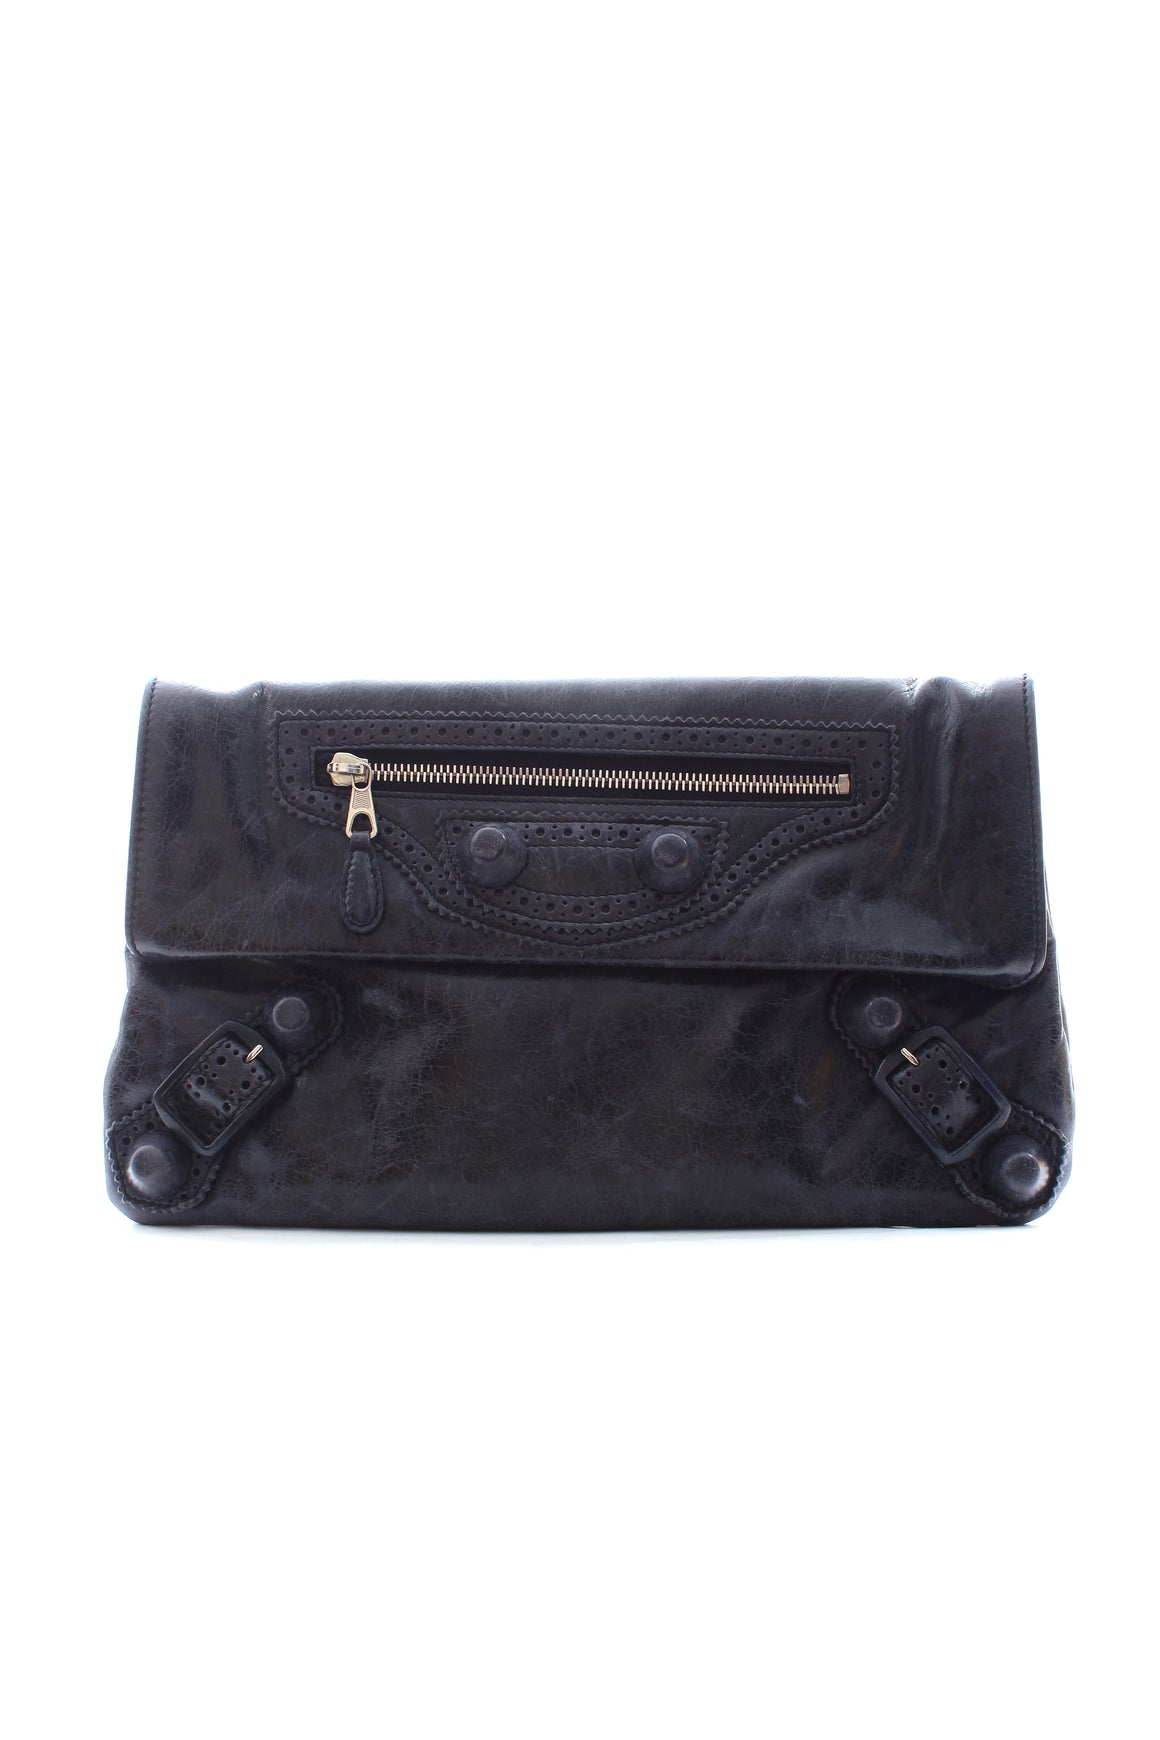 Balenciaga Giant Brogues Leather Clutch Bag